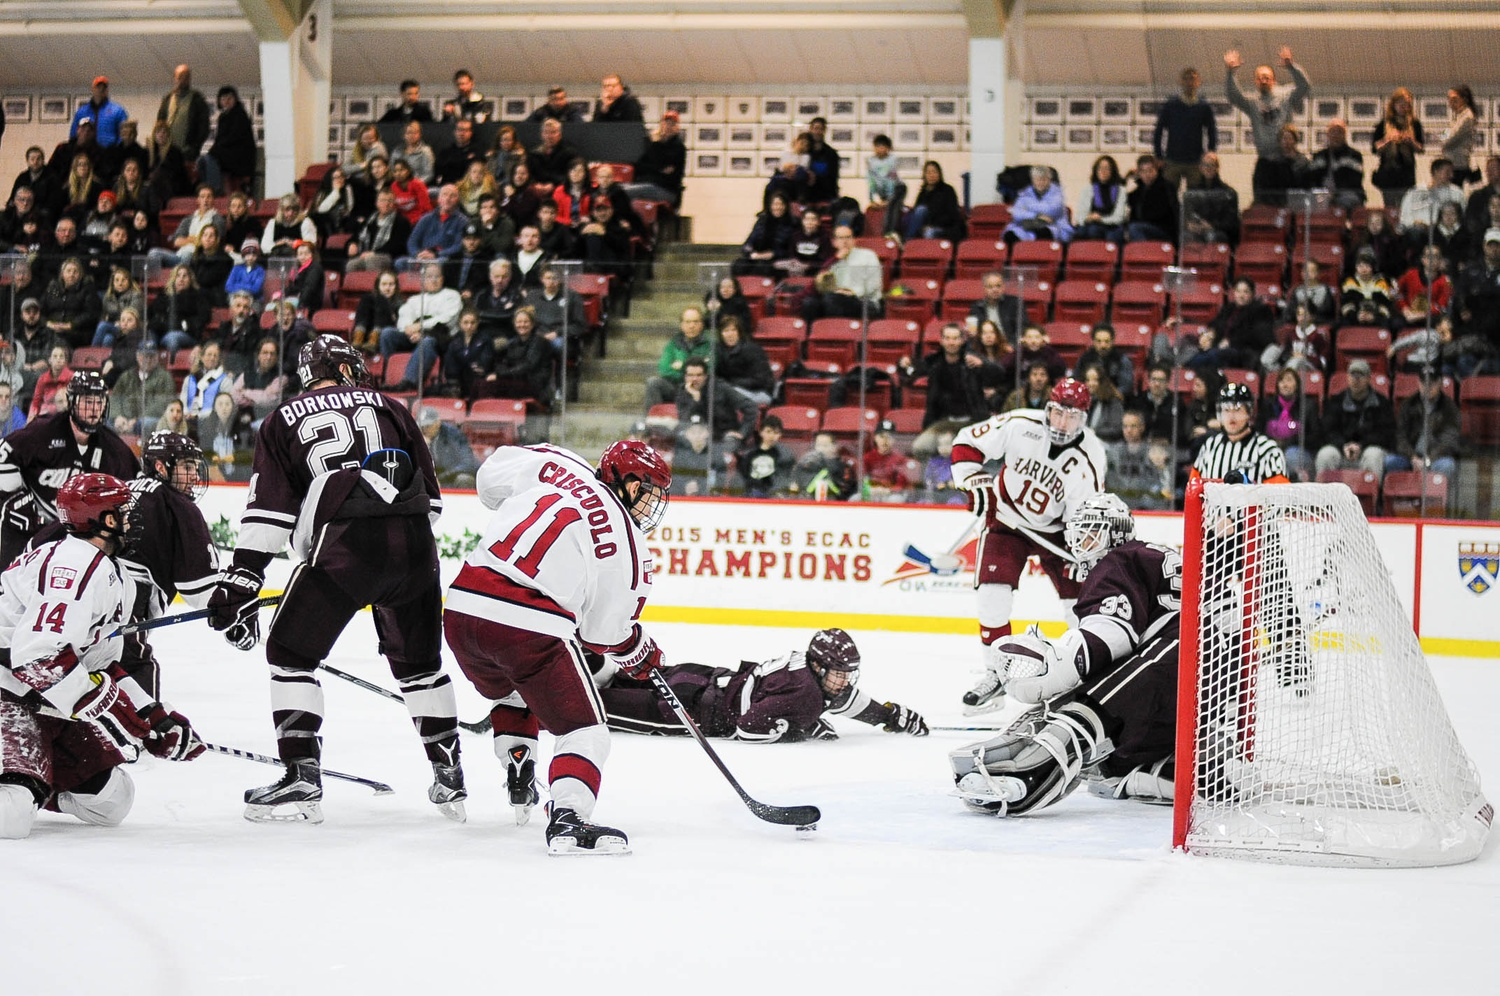 Senior forward Kyle Criscuolo takes a shot on goal with classmate Jimmy Vesey (19) in the background. The co-captains were two of the biggest contributors to the rejuvenated success of the program.